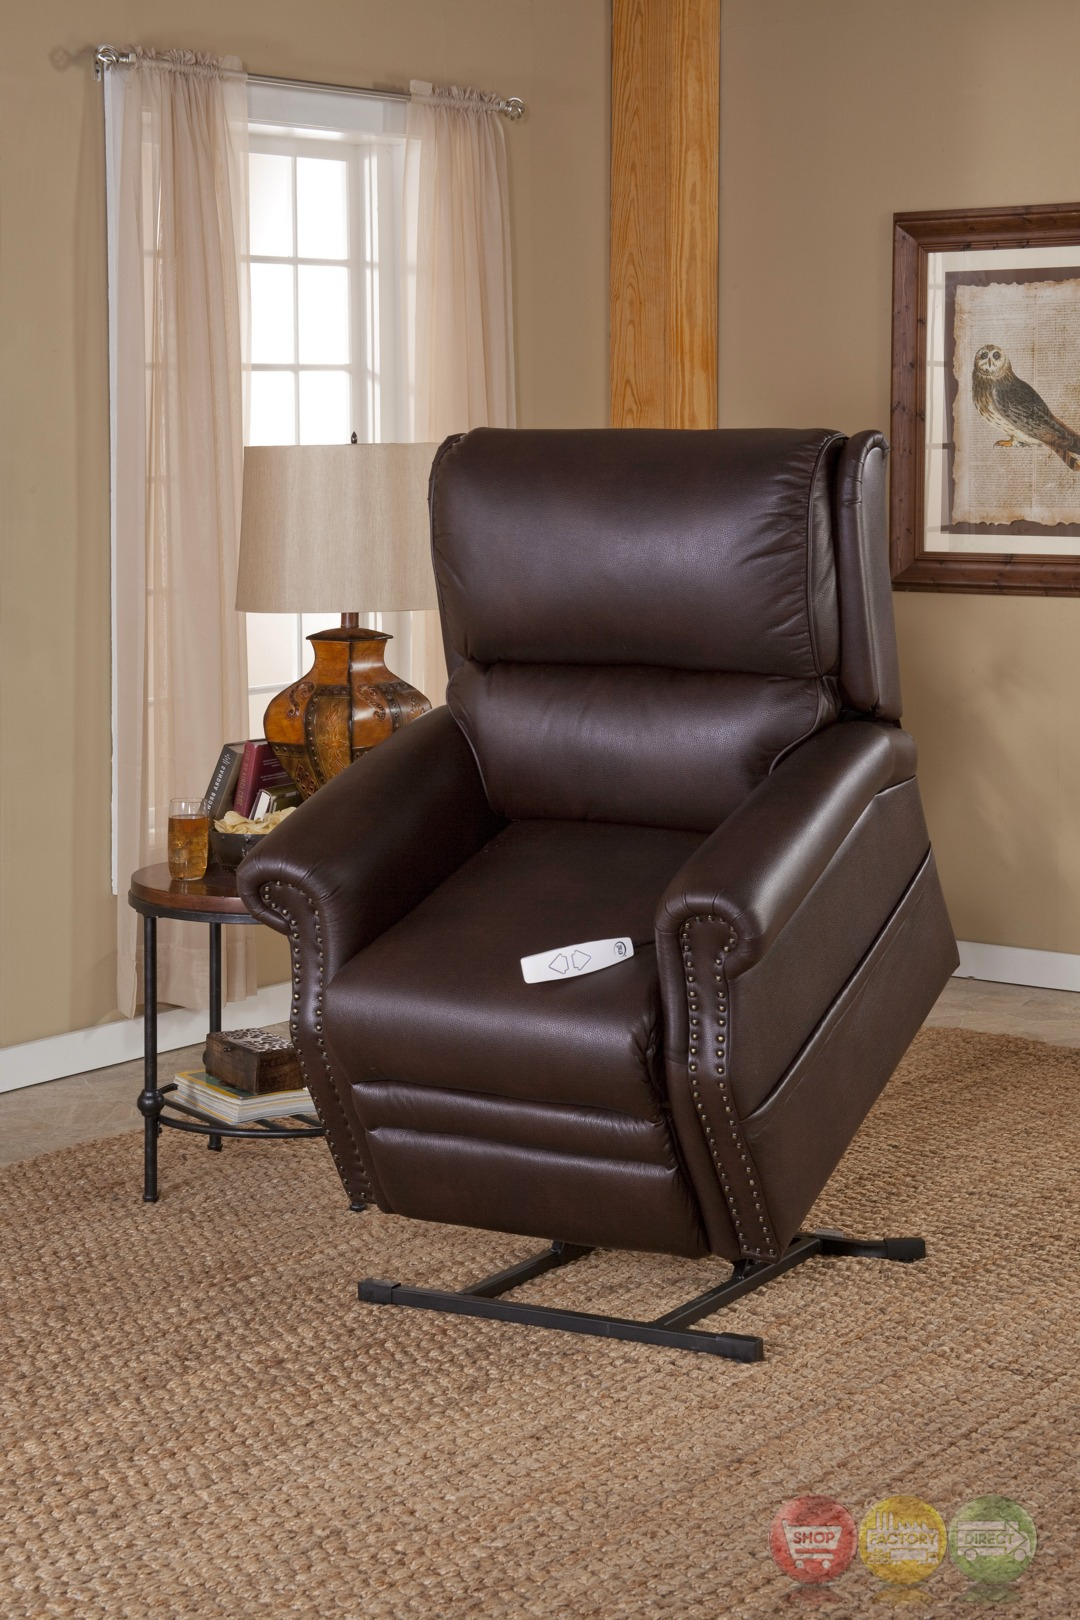 Sheffield Cocoa Brown Reclining Lift Chair With Usb Outlet